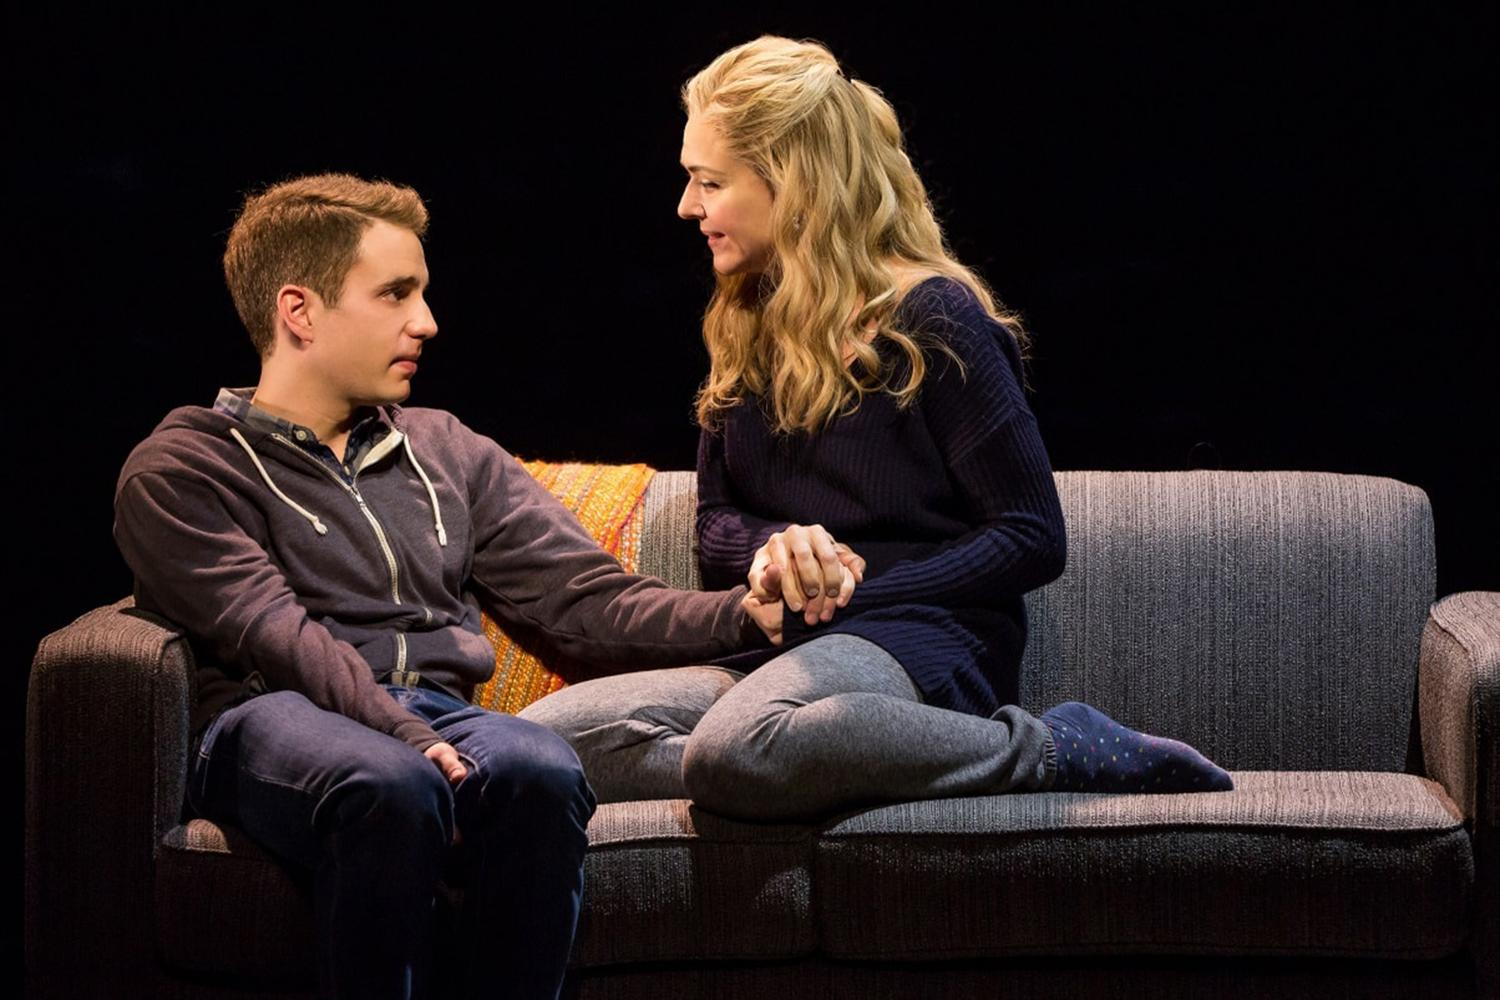 Ben+Platt+and+Rachel+Bay+Jones+in+the+musical%2C+%22Dear+Evan+Hansen.%22+%28Handout%2FTNS%29